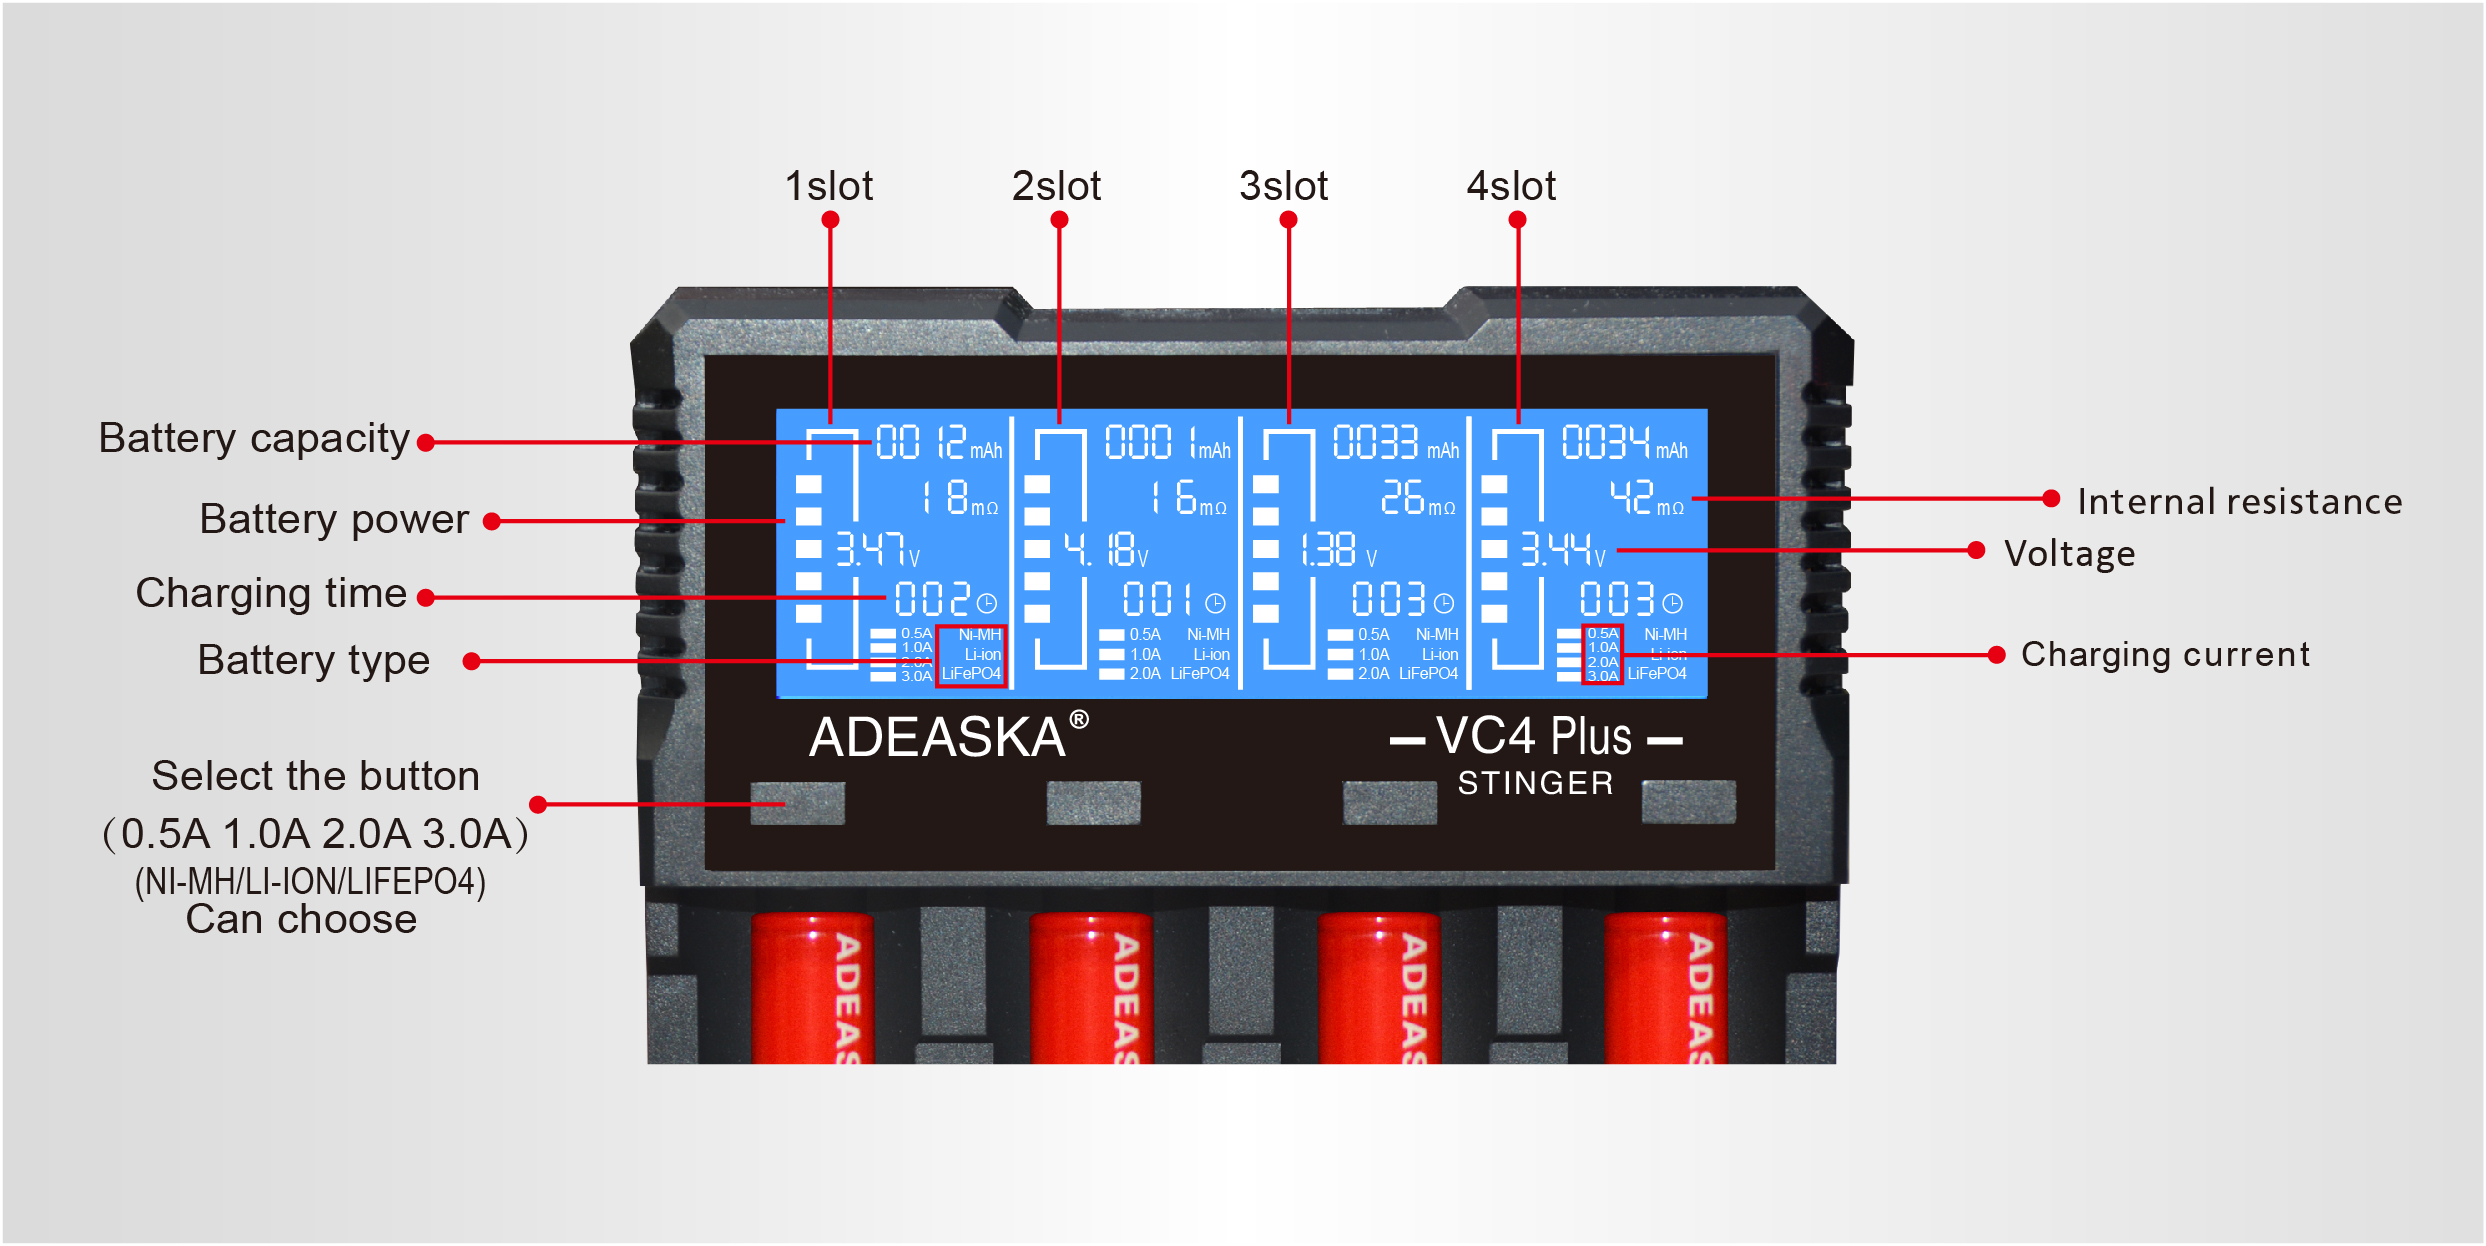 ADEASKA VC4 PLUS 3A Fast Charging LCD Screen USB Battery Charger For 14500 18650 26650 21700 Battery